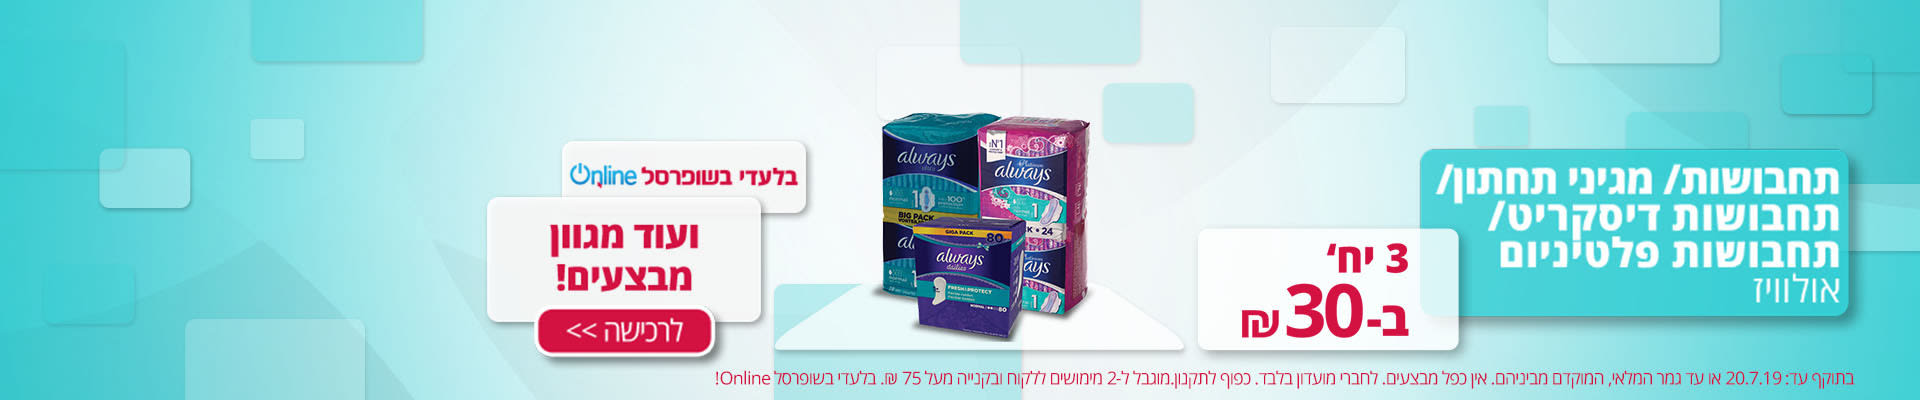 july_pharm_sale_banner_site_always_1920x400.jpg